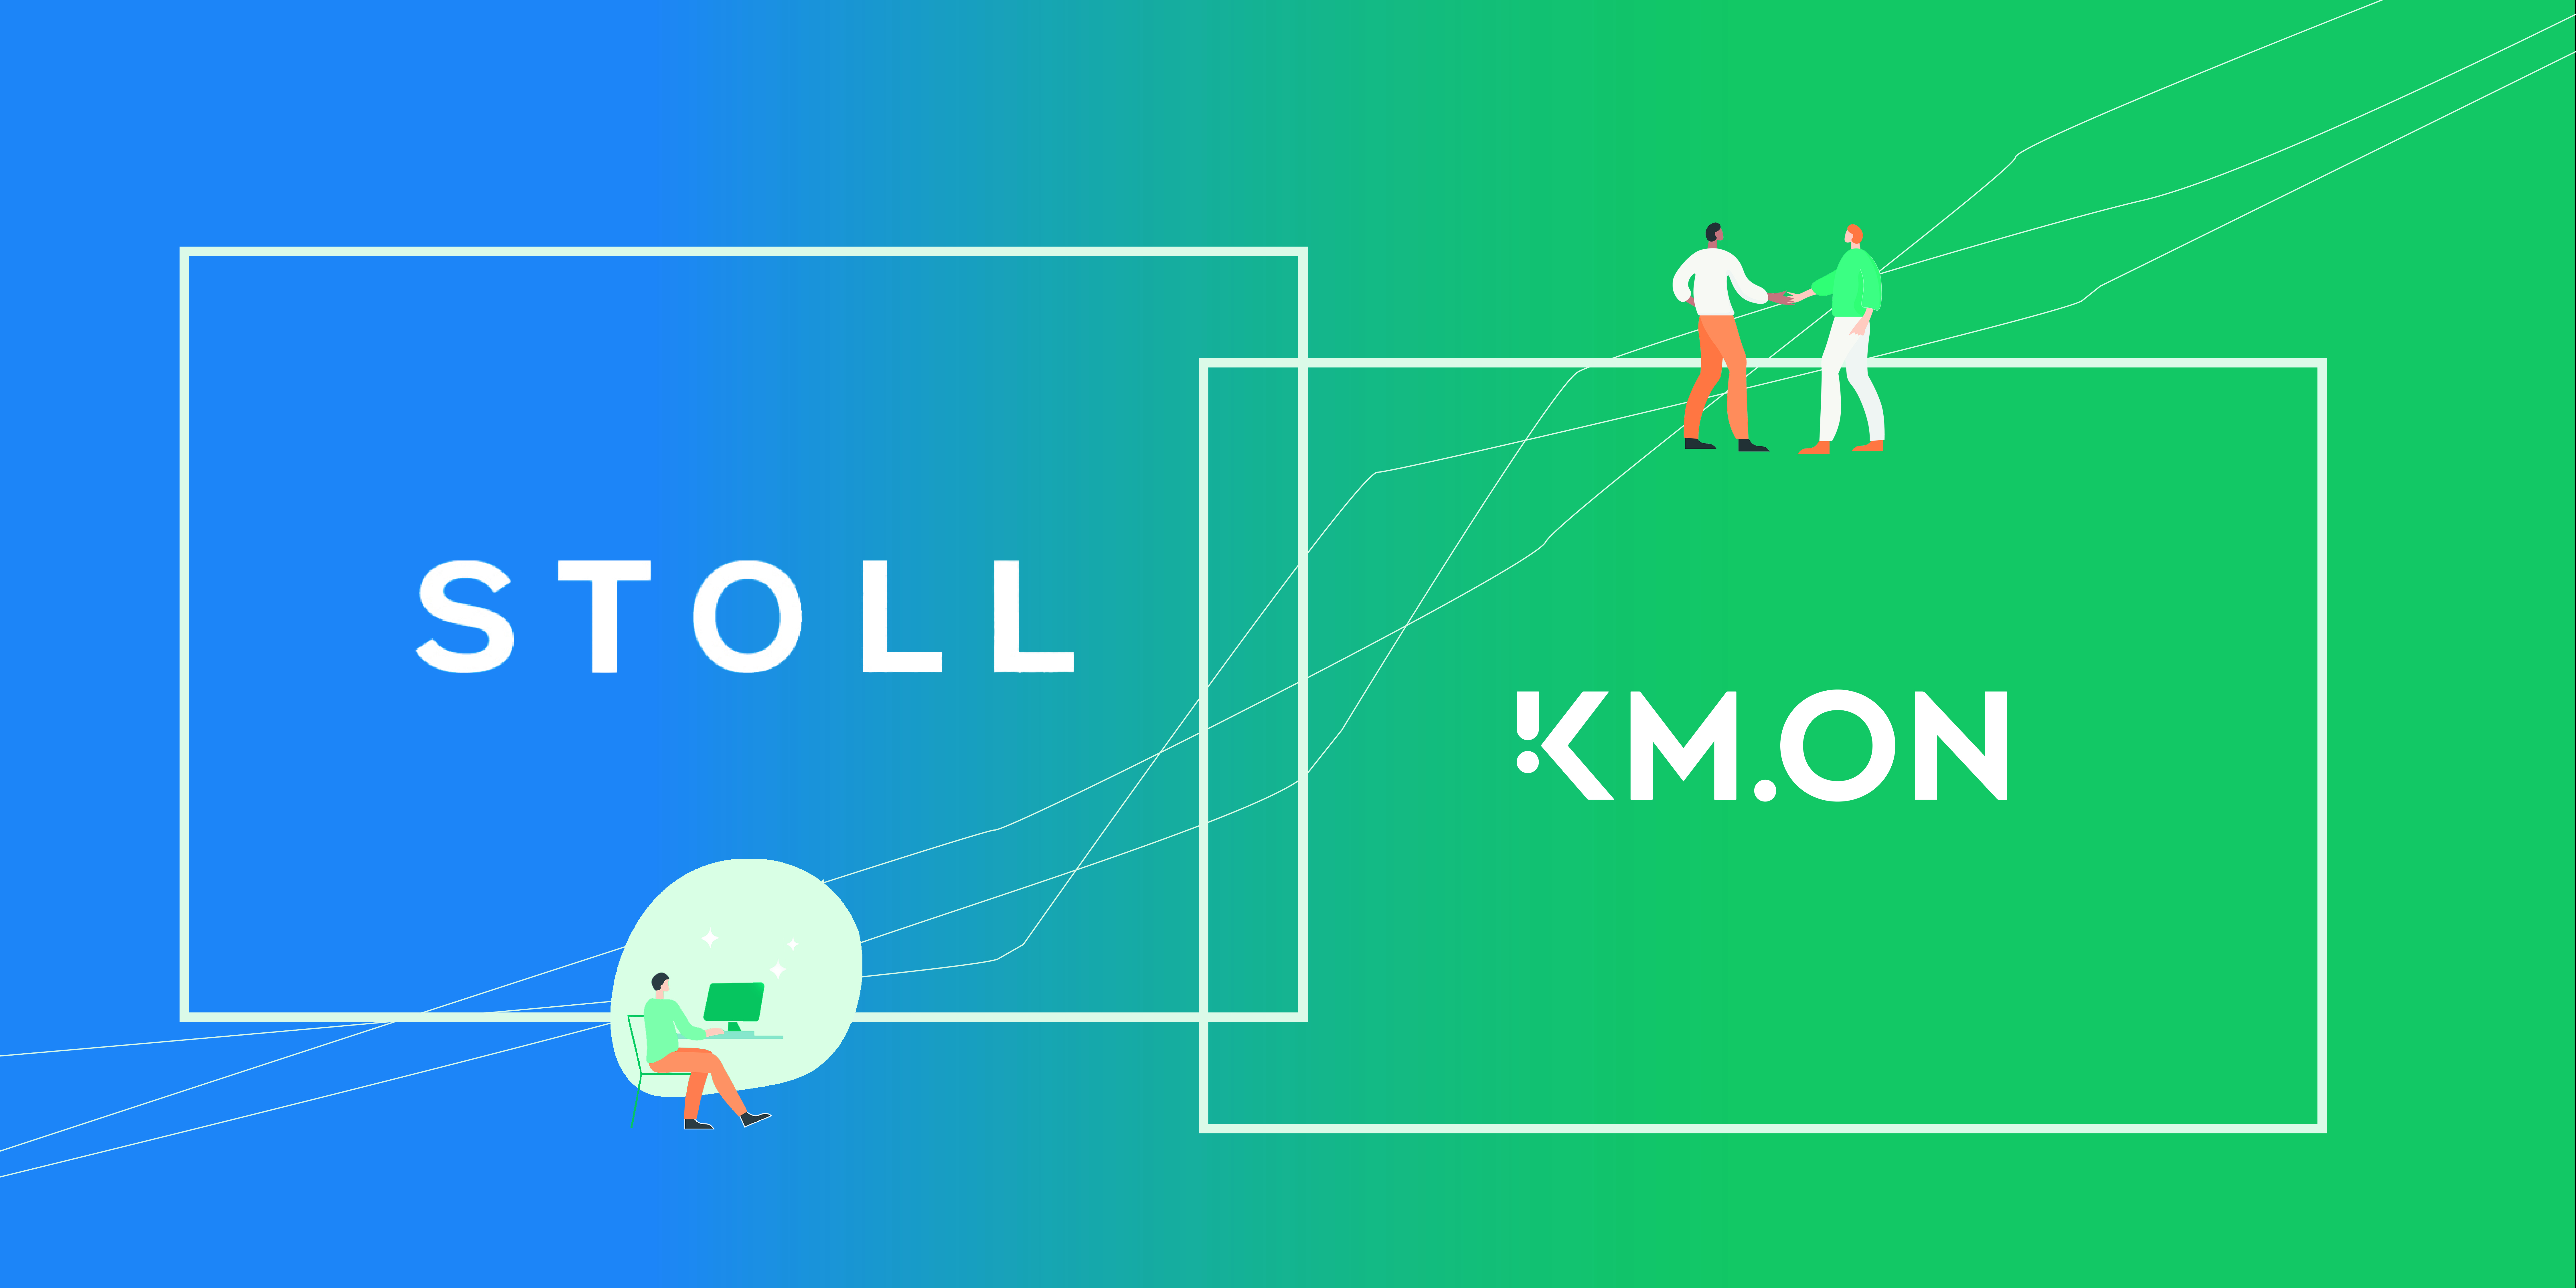 Synergies between STOLL and KM.ON for the benefit of customers